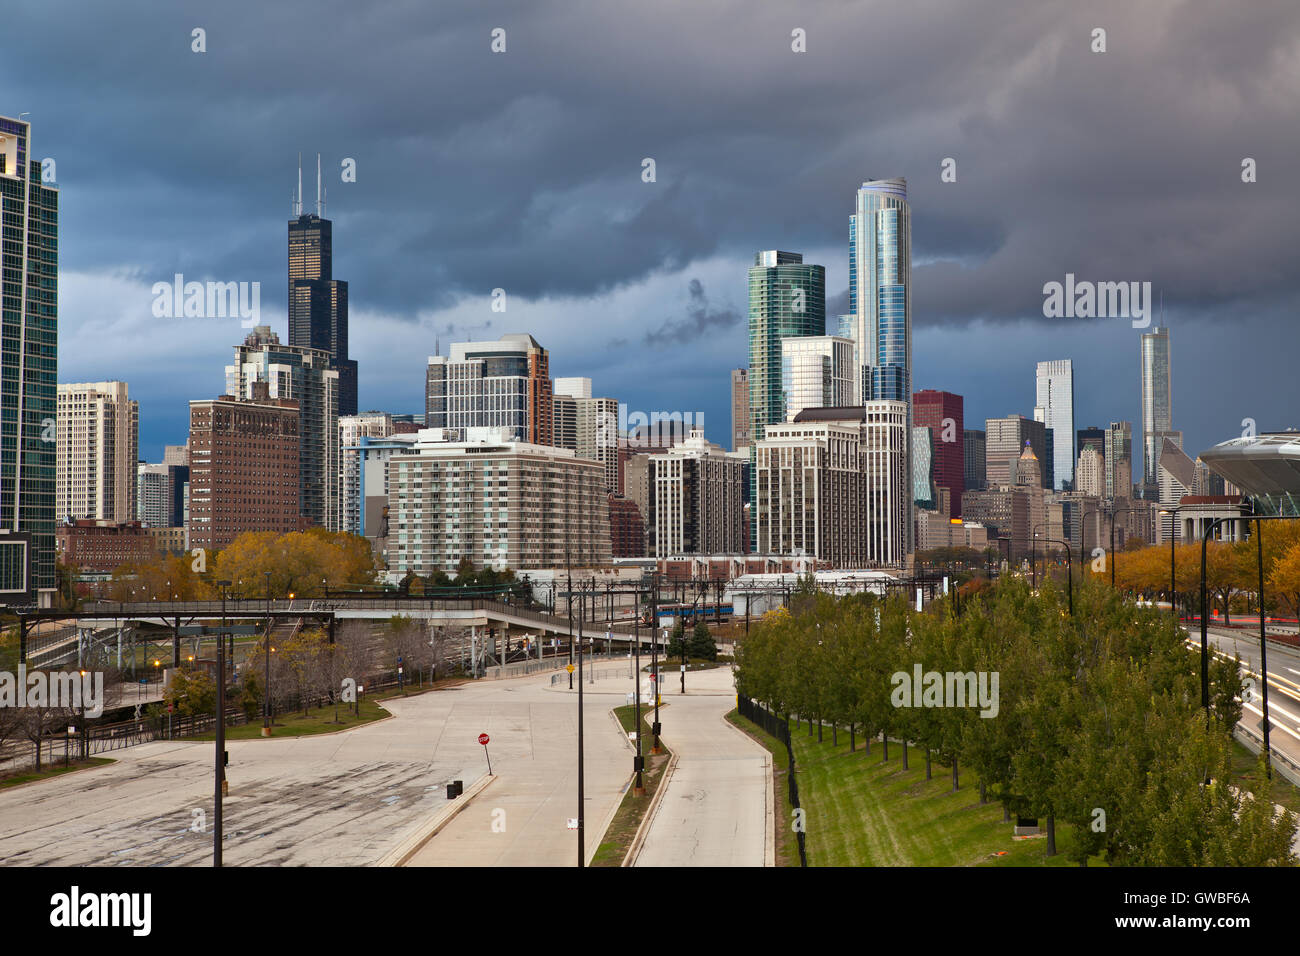 City of Chicago. Image of Chicago downtown with dramatic sky. - Stock Image